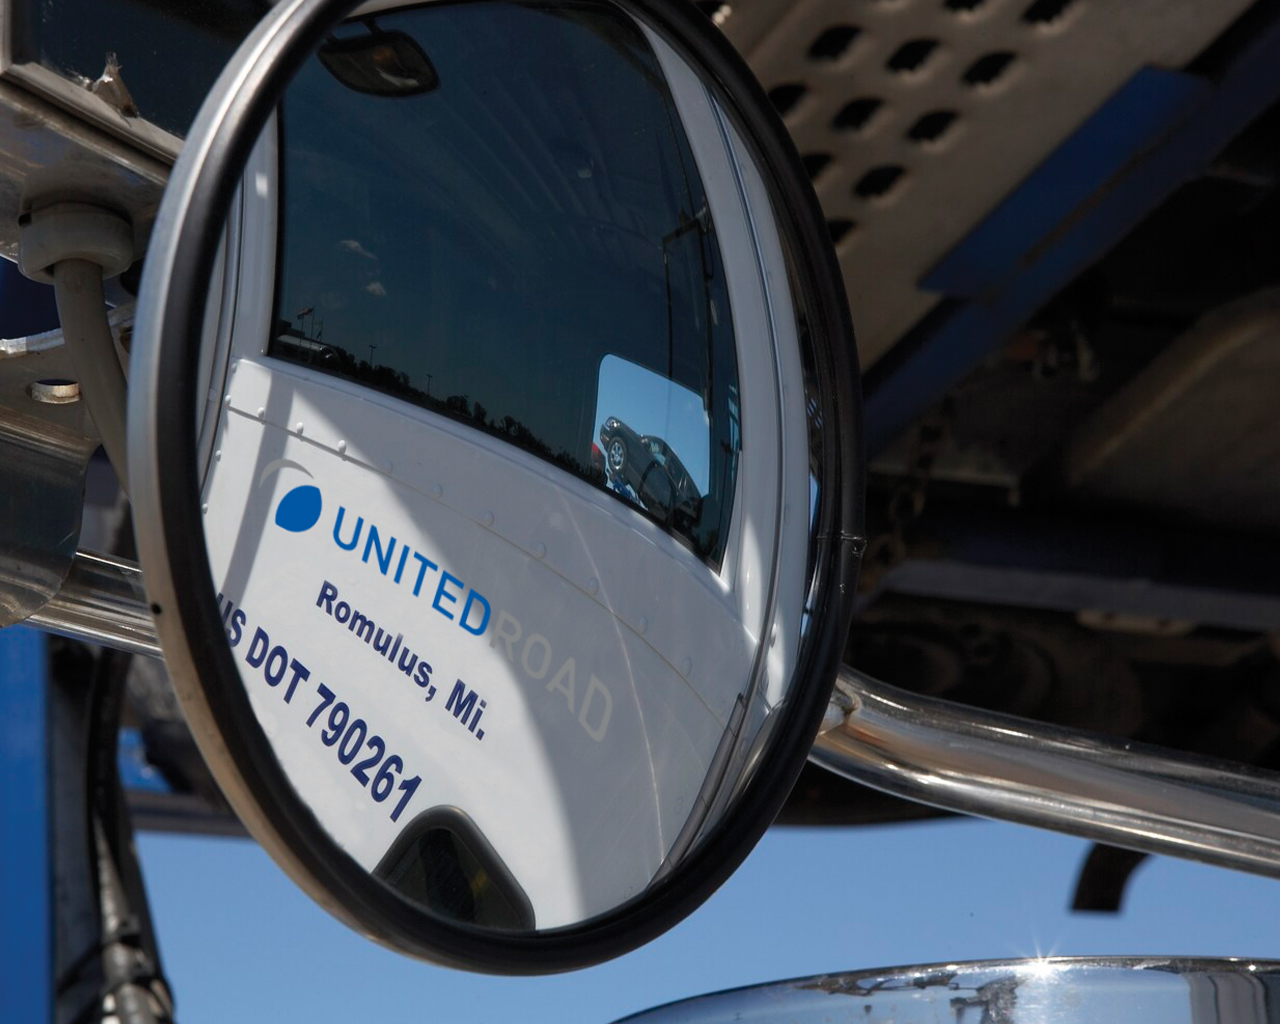 United Road Services is a corporate carhauling venture